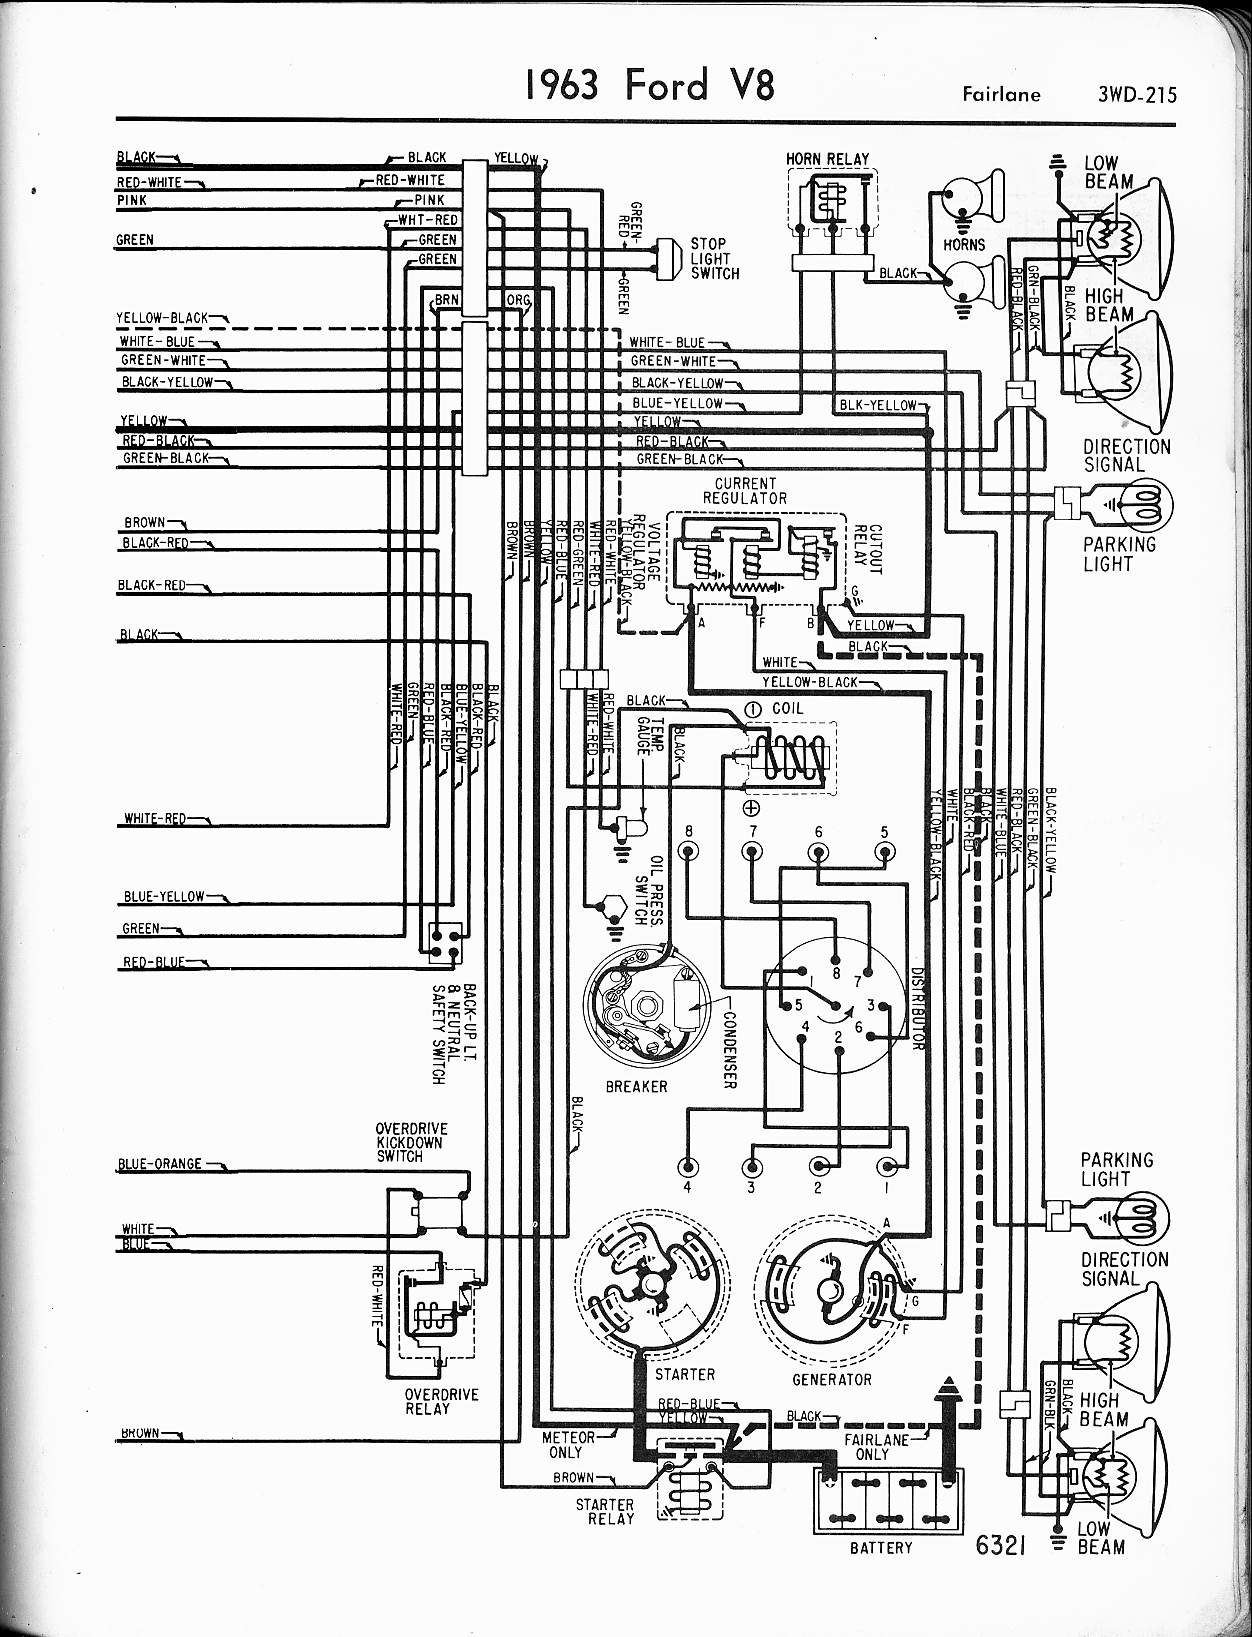 1967 Ford Fairlane Wiring Diagram